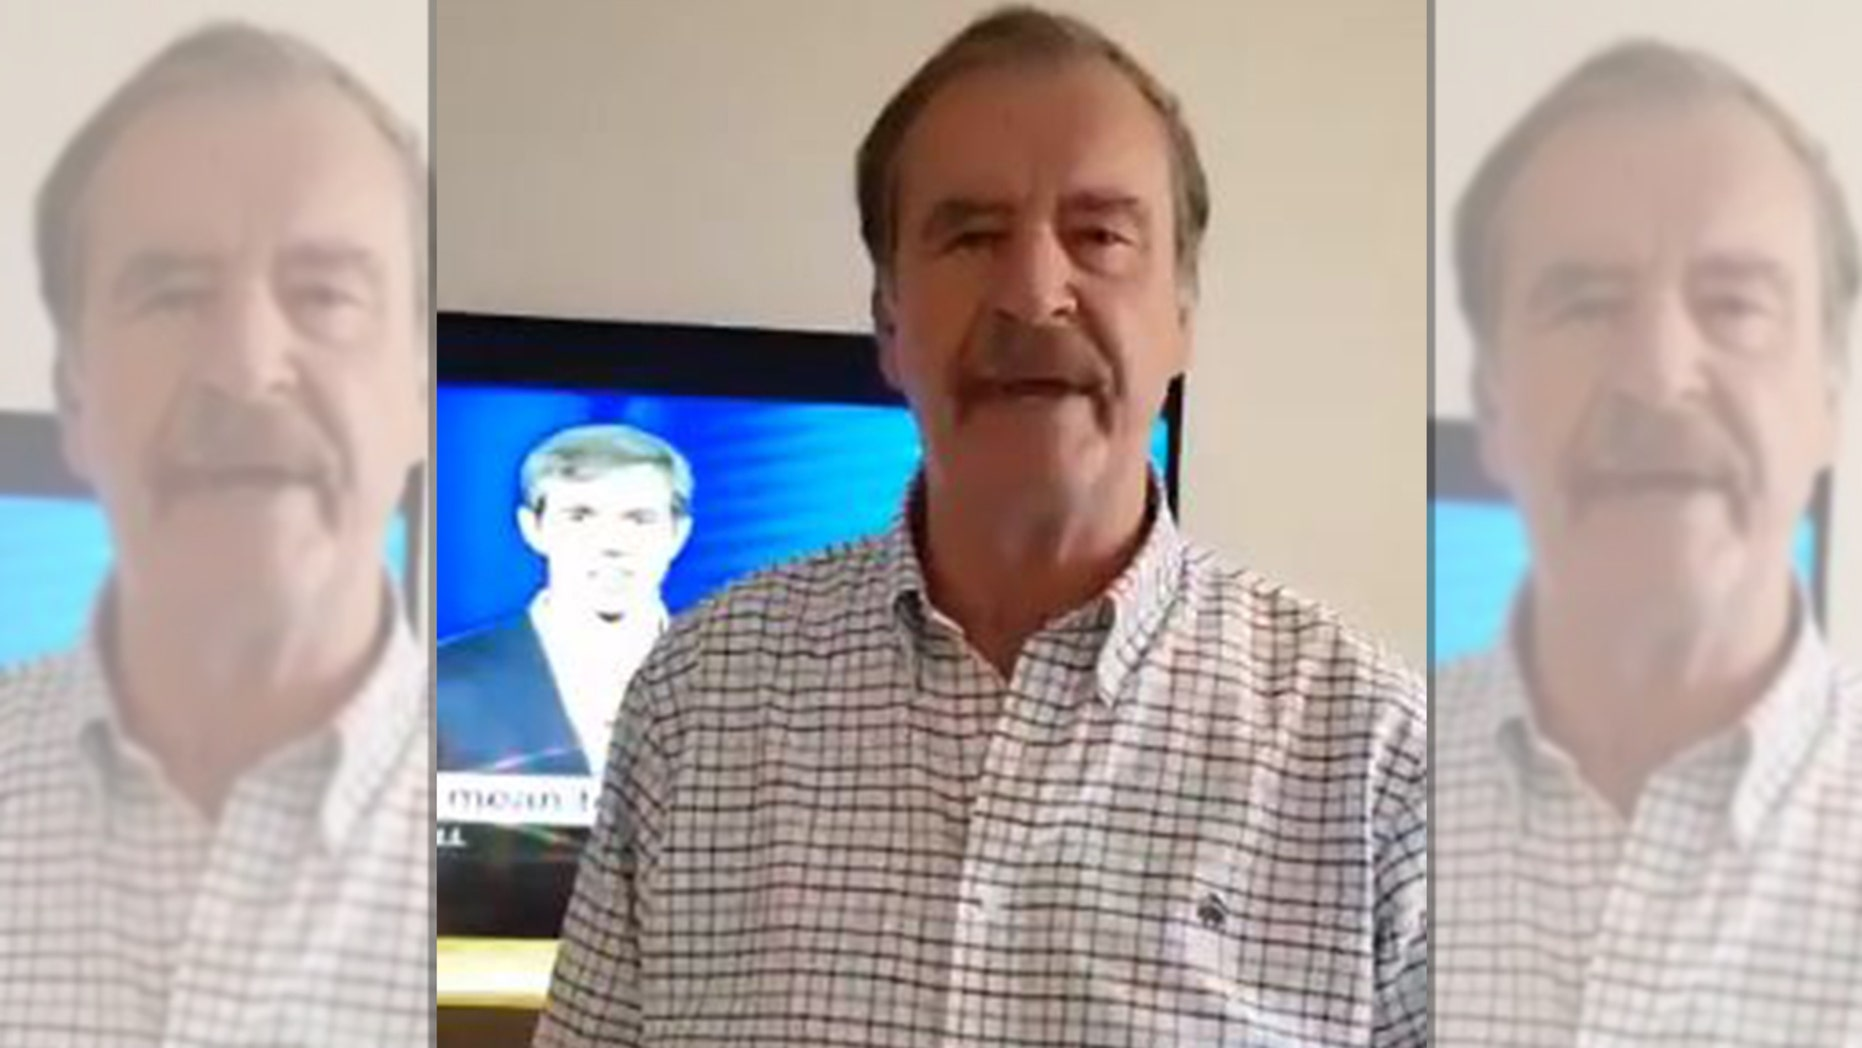 Former Mexican President Vicente Fox endorsed Beto O'Rourke in the Texas Senate race in a Twitter video on Thursday.